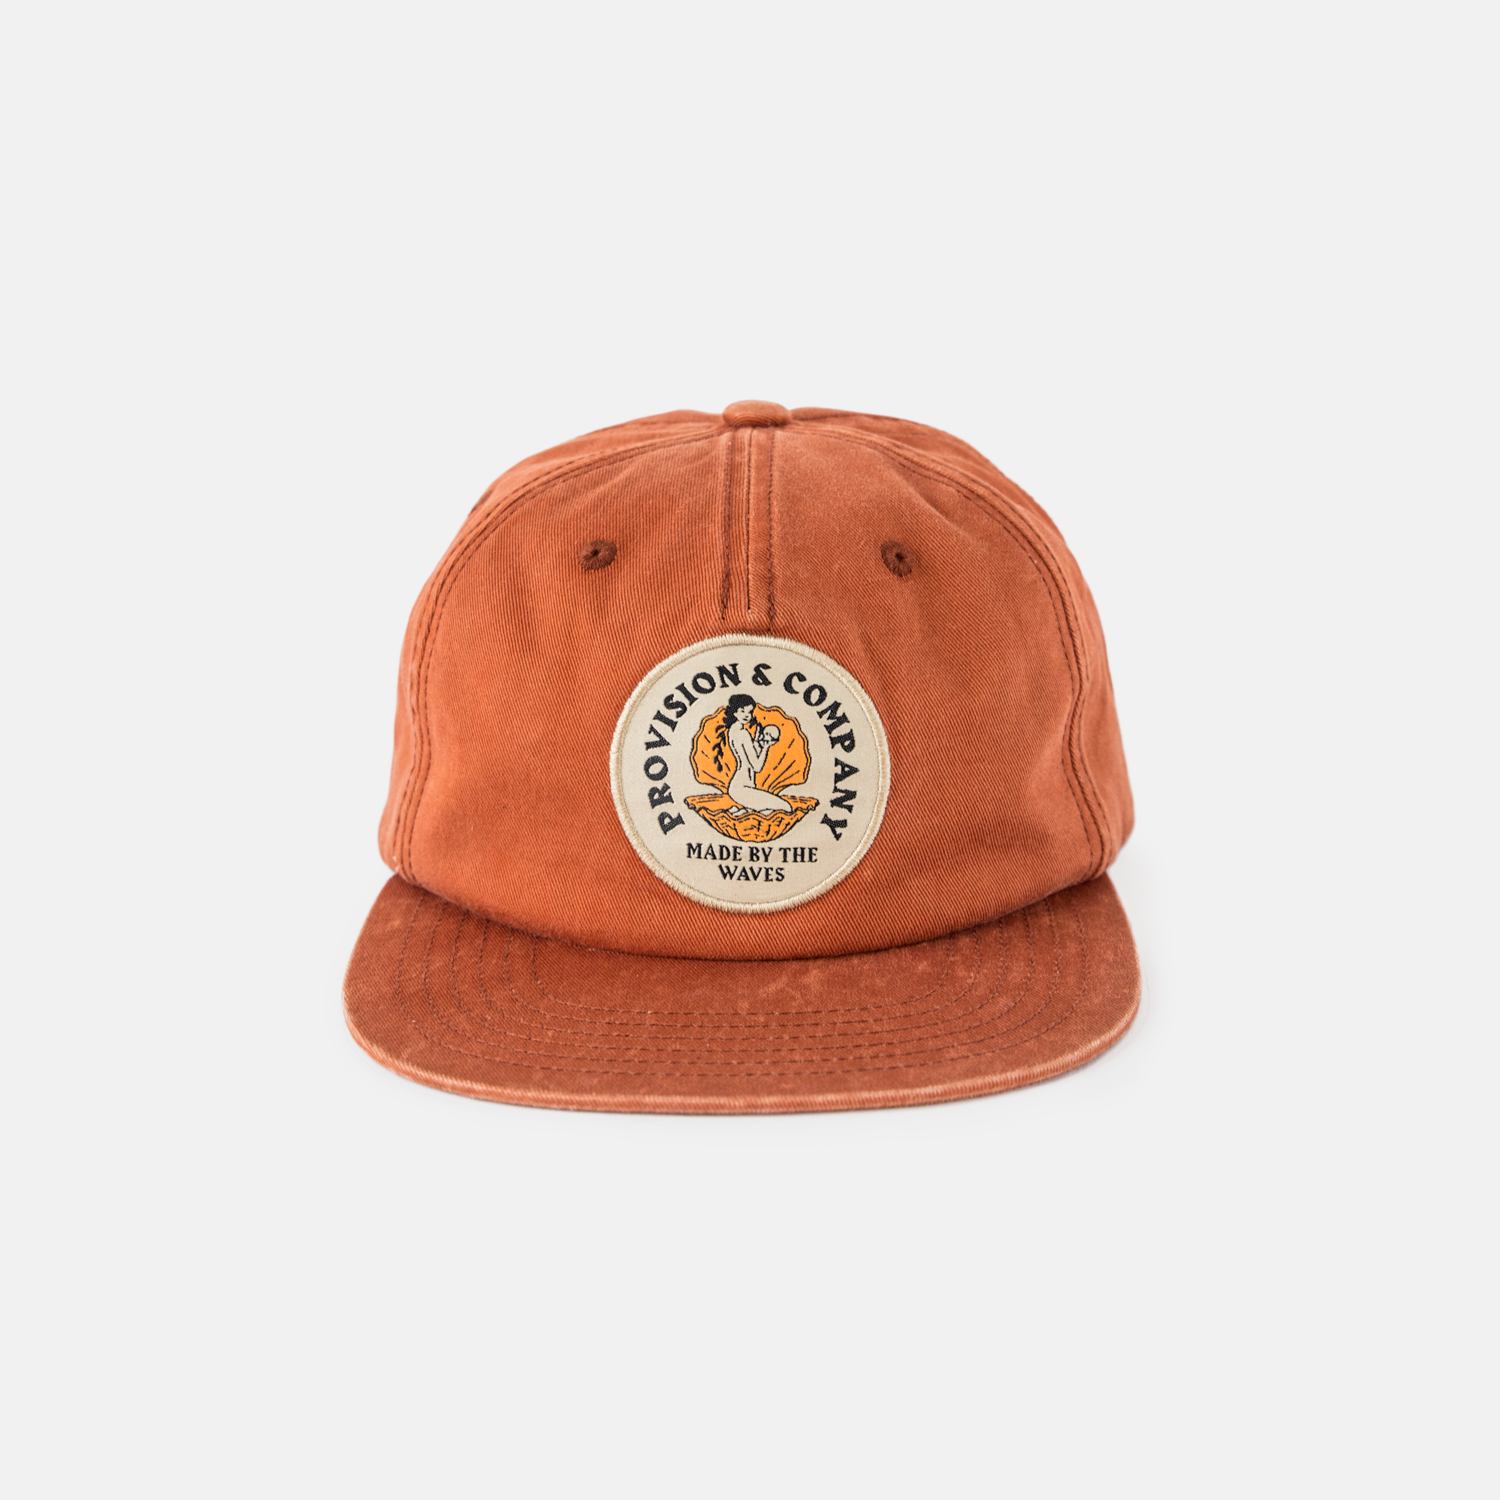 P&Co - Washed Orange Made by The Waves 5 Panel Cap - Provision & Co